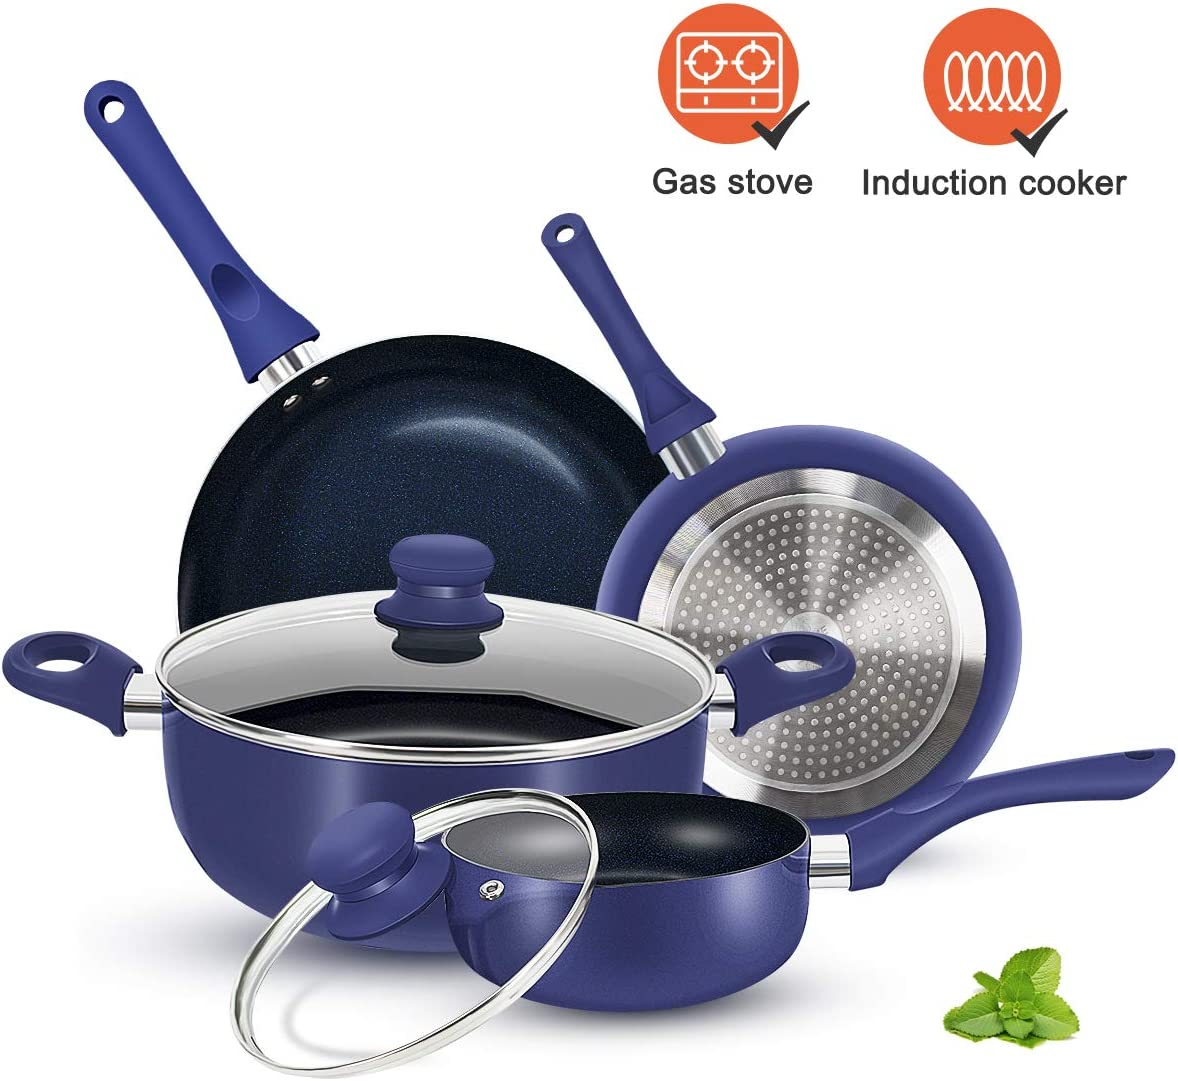 Free Amazon Promo Code 2020 for Cookware Set